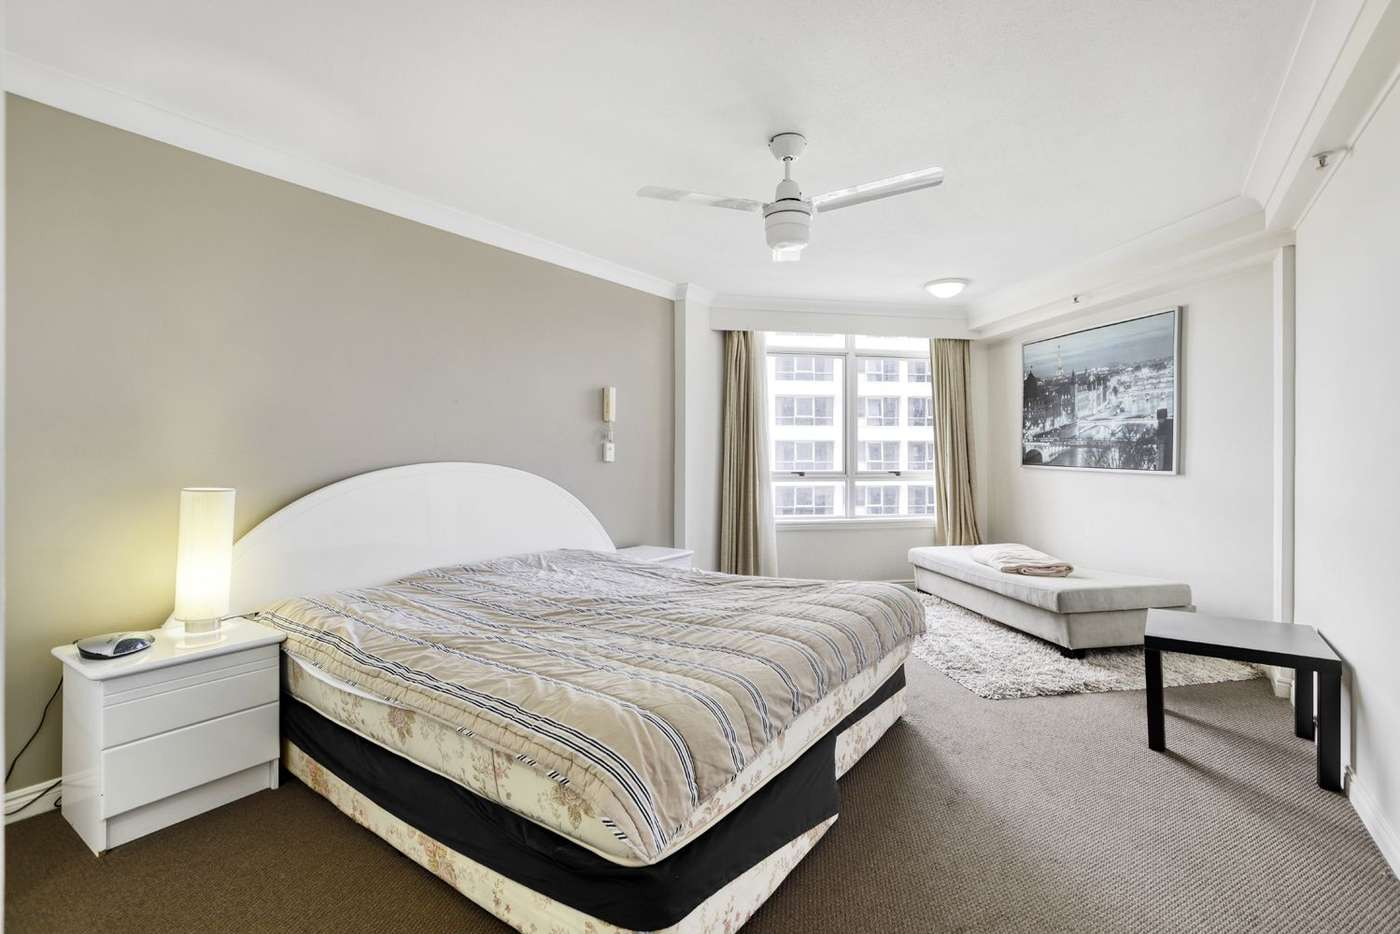 Sixth view of Homely unit listing, 38/7 Elkhorn Avenue, Surfers Paradise QLD 4217